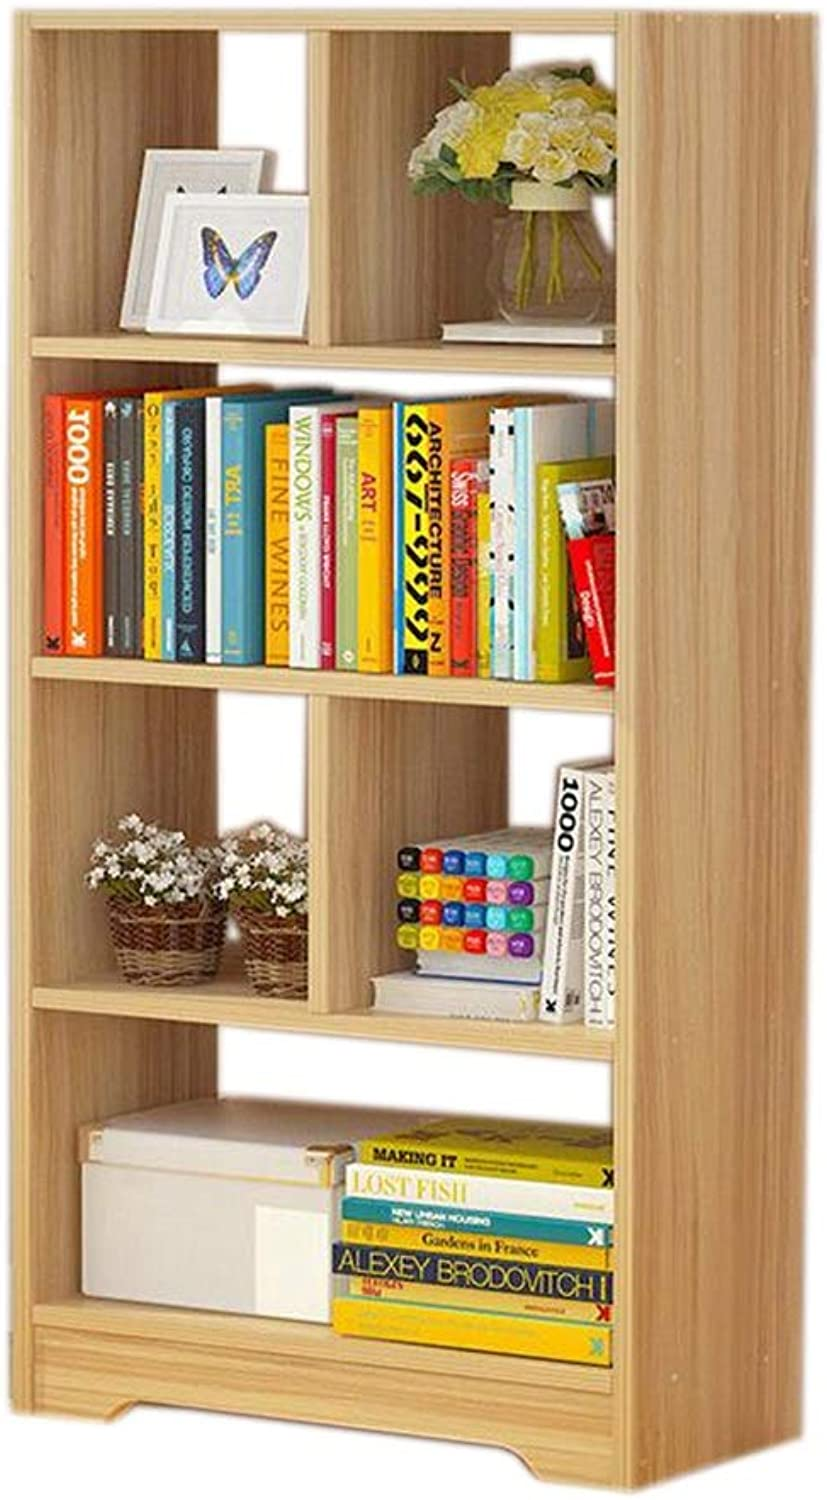 JCAFA Shelves Bookcase Bookcase 4-Layer Multi-Grid Storage Cube Multifunctional Storage Bookcase Floor Stand Suitable for Home Office (color   Wood color, Size   19.68  6.69  47.24in)